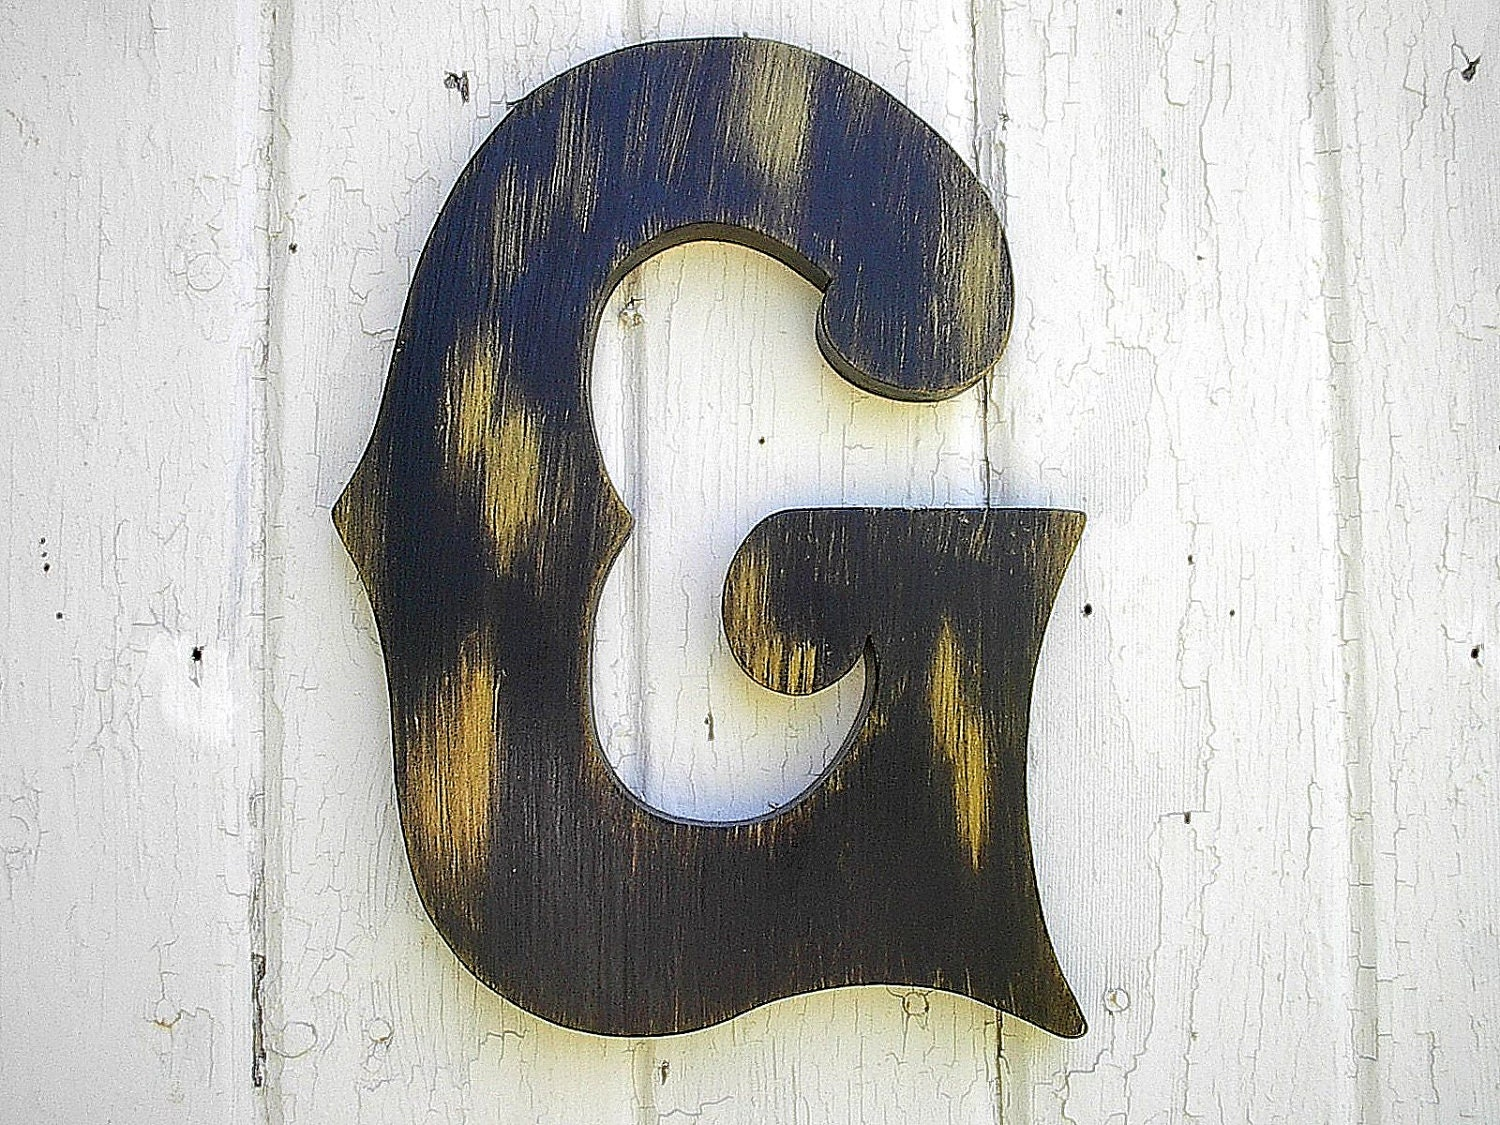 Letter C Wall Art Wooden Letters G 12 Inch Decorative Wall Decor Distressed Kids